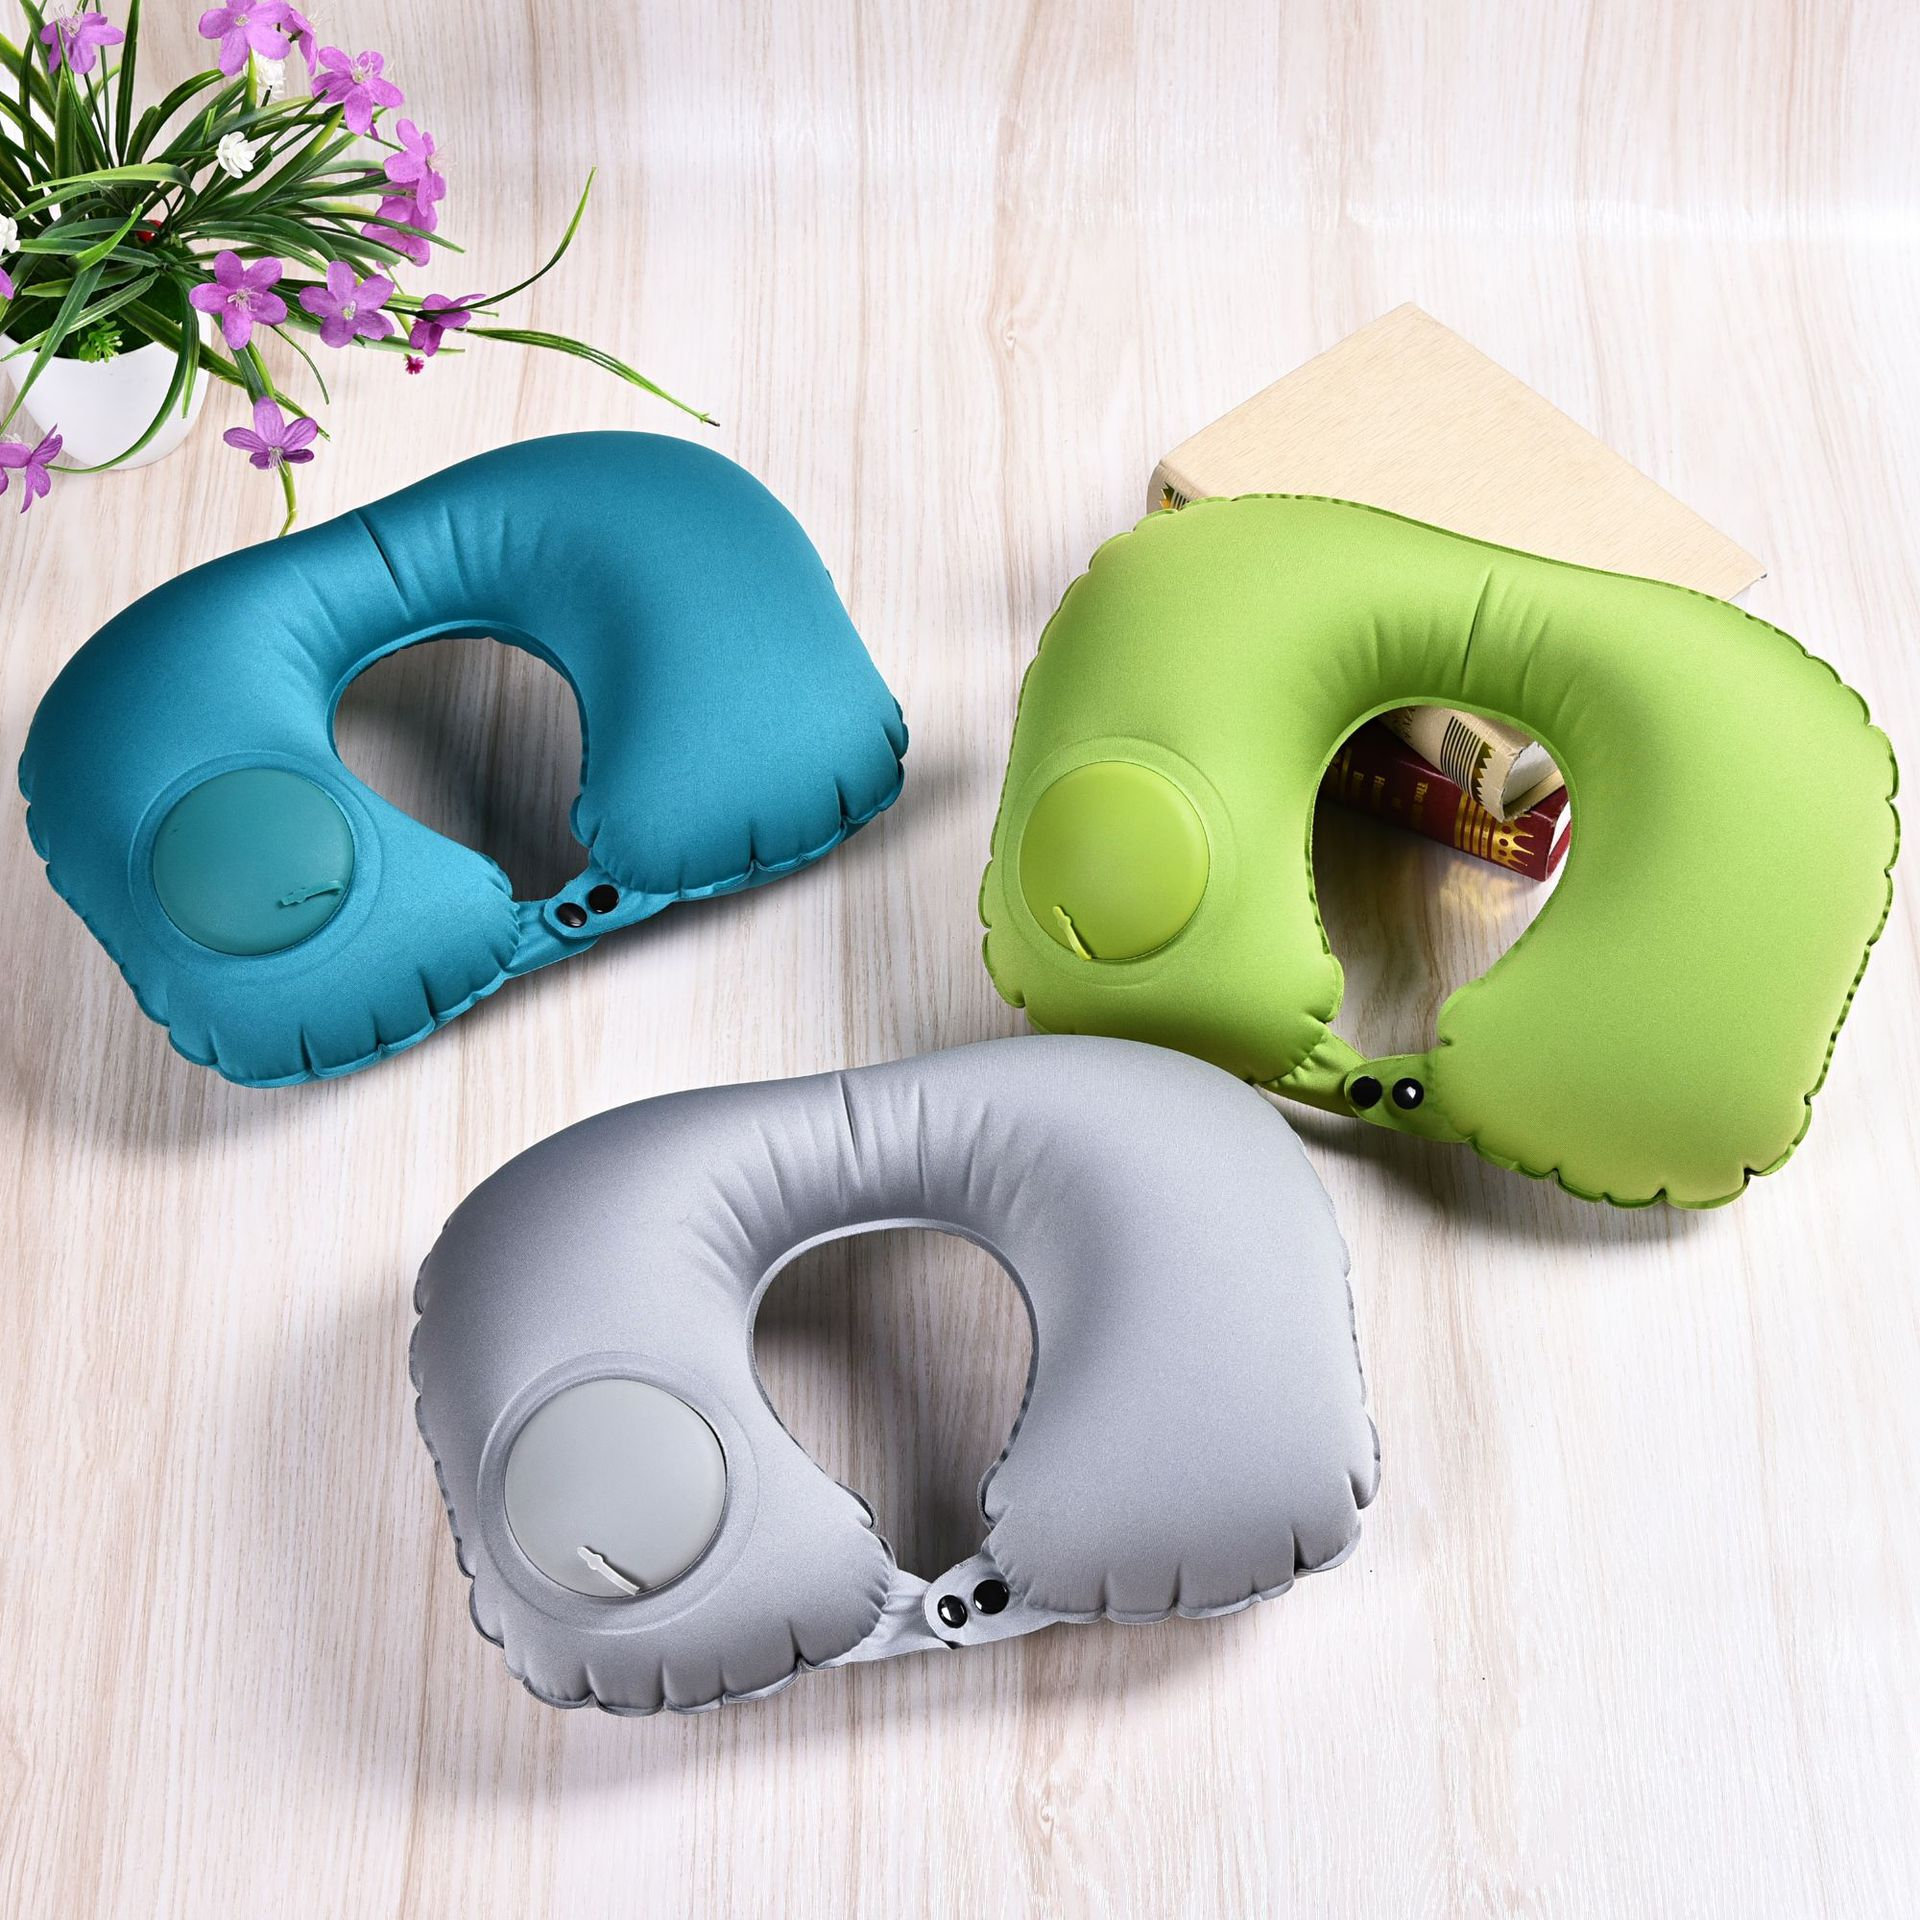 Neck Pillow Buy on Amazon and Aliexpress